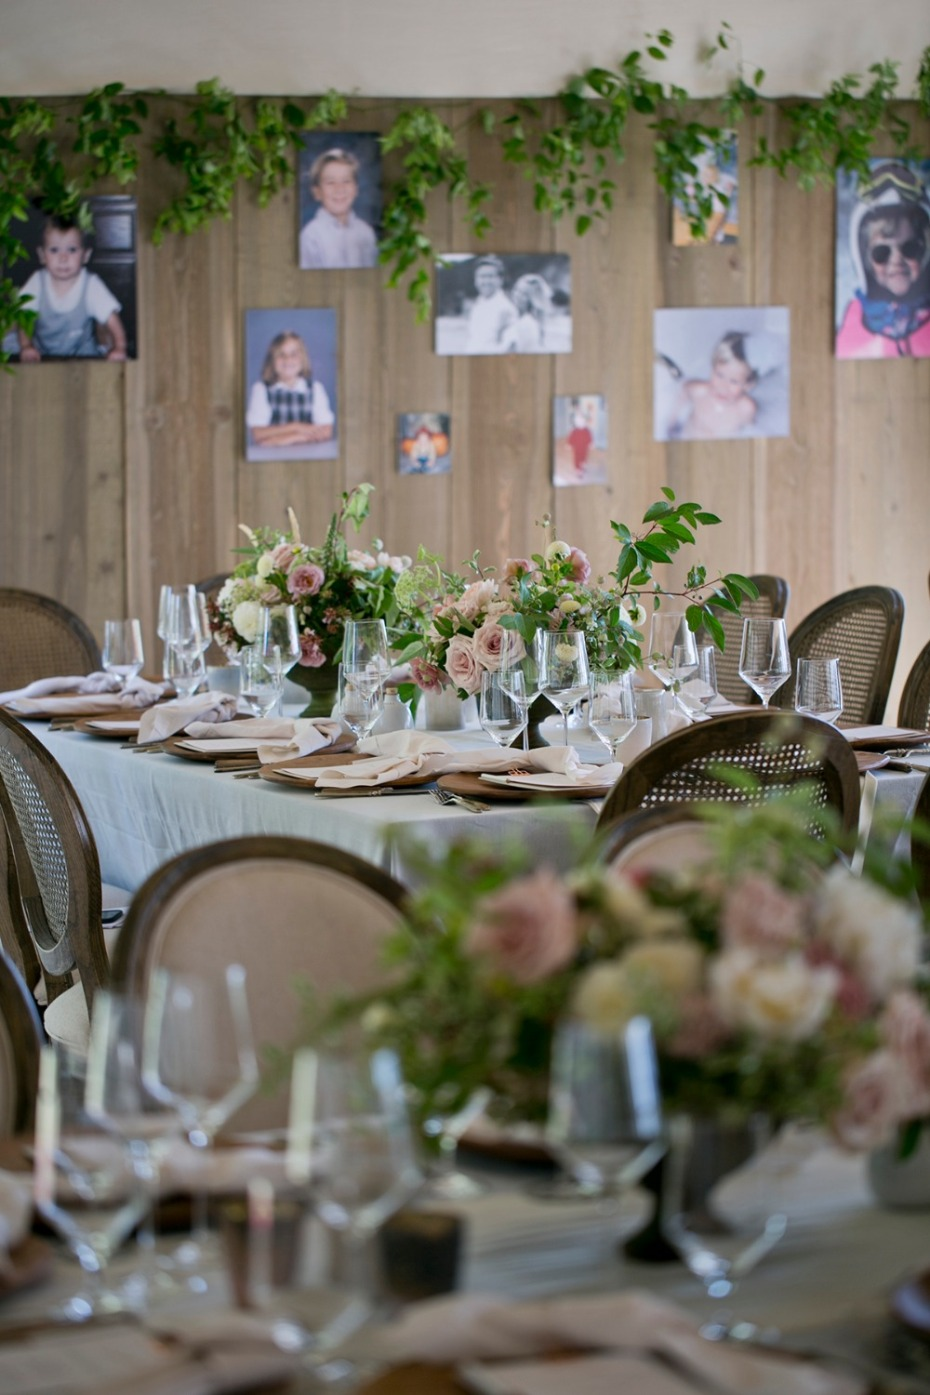 674743_10-ways-to-make-your-rehearsal-dinner